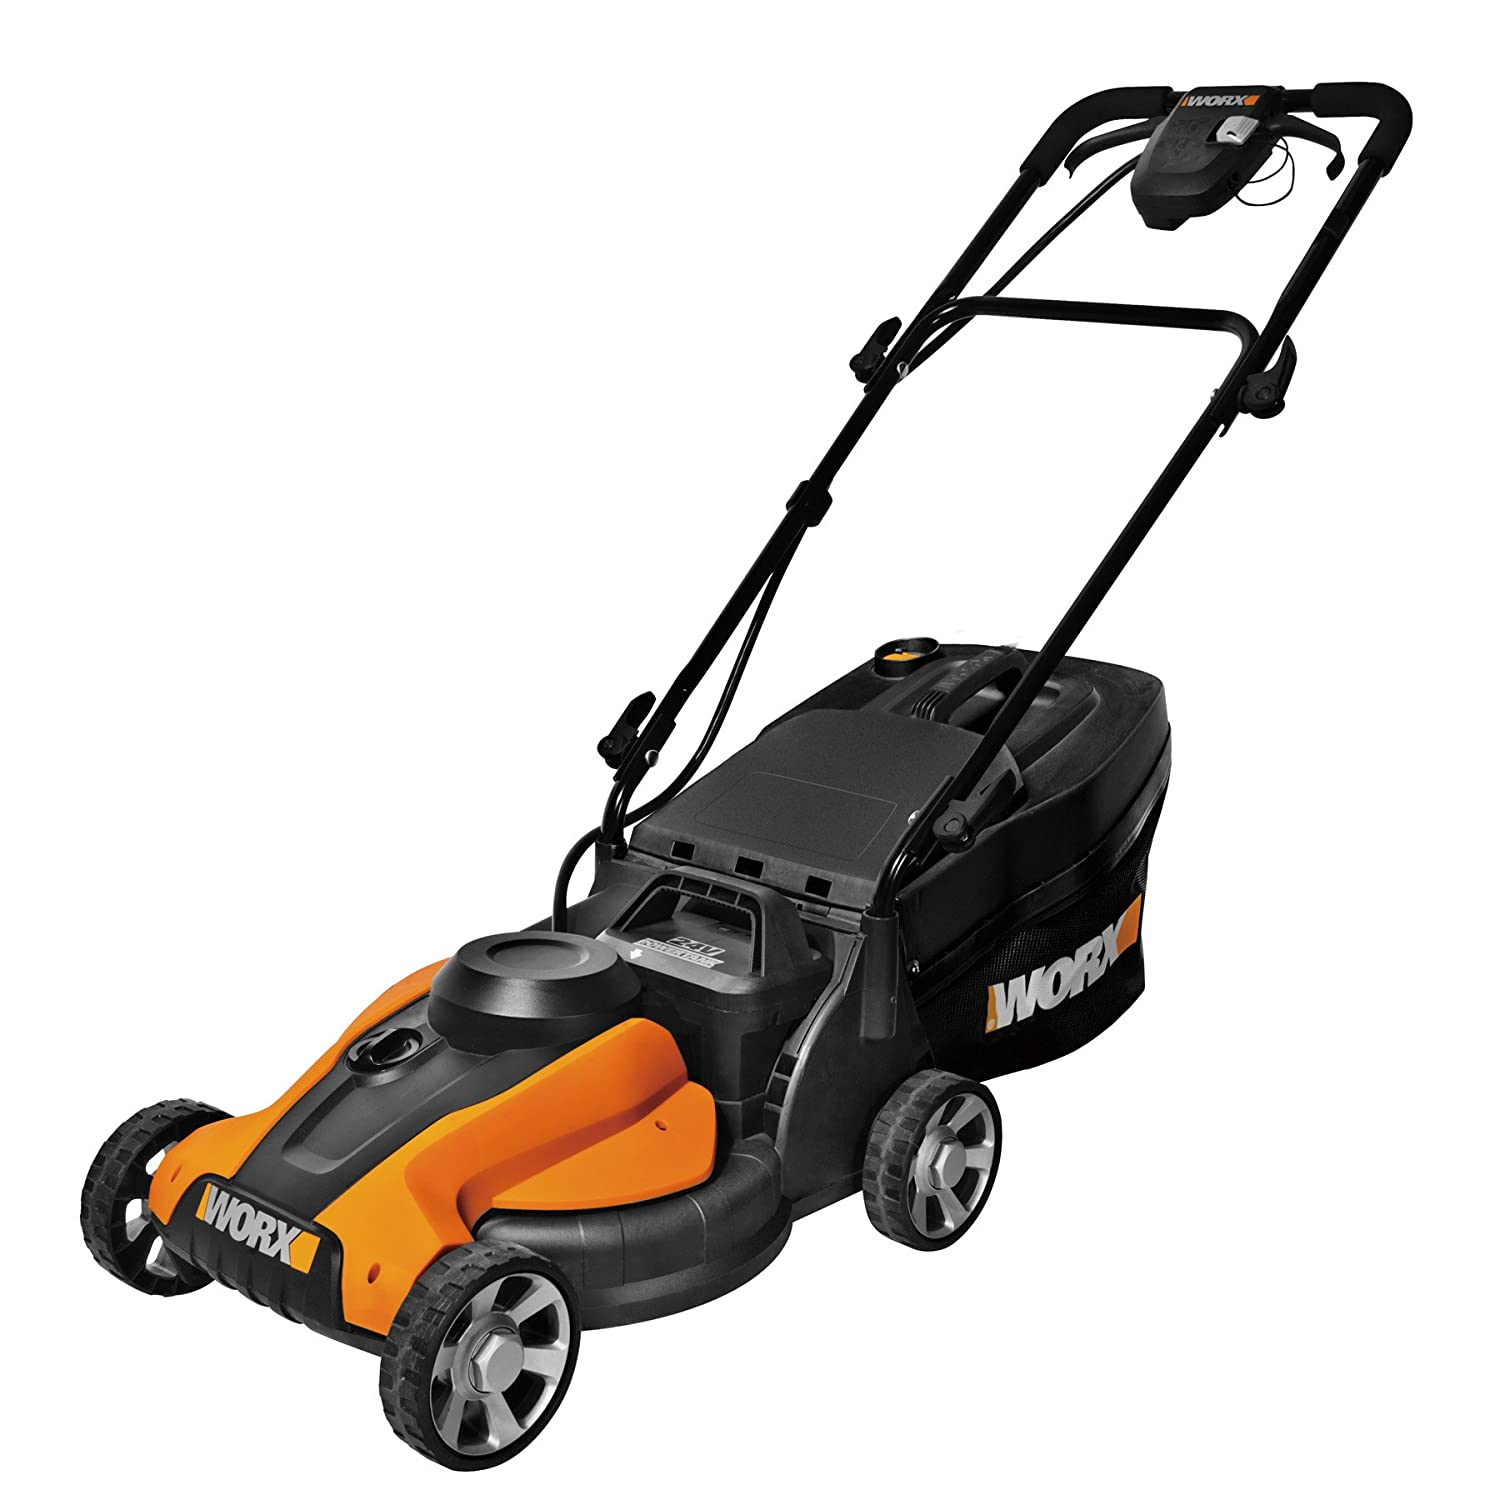 Amazon WORX WG782 14 Inch 24 Volt Cordless Lawn Mower with